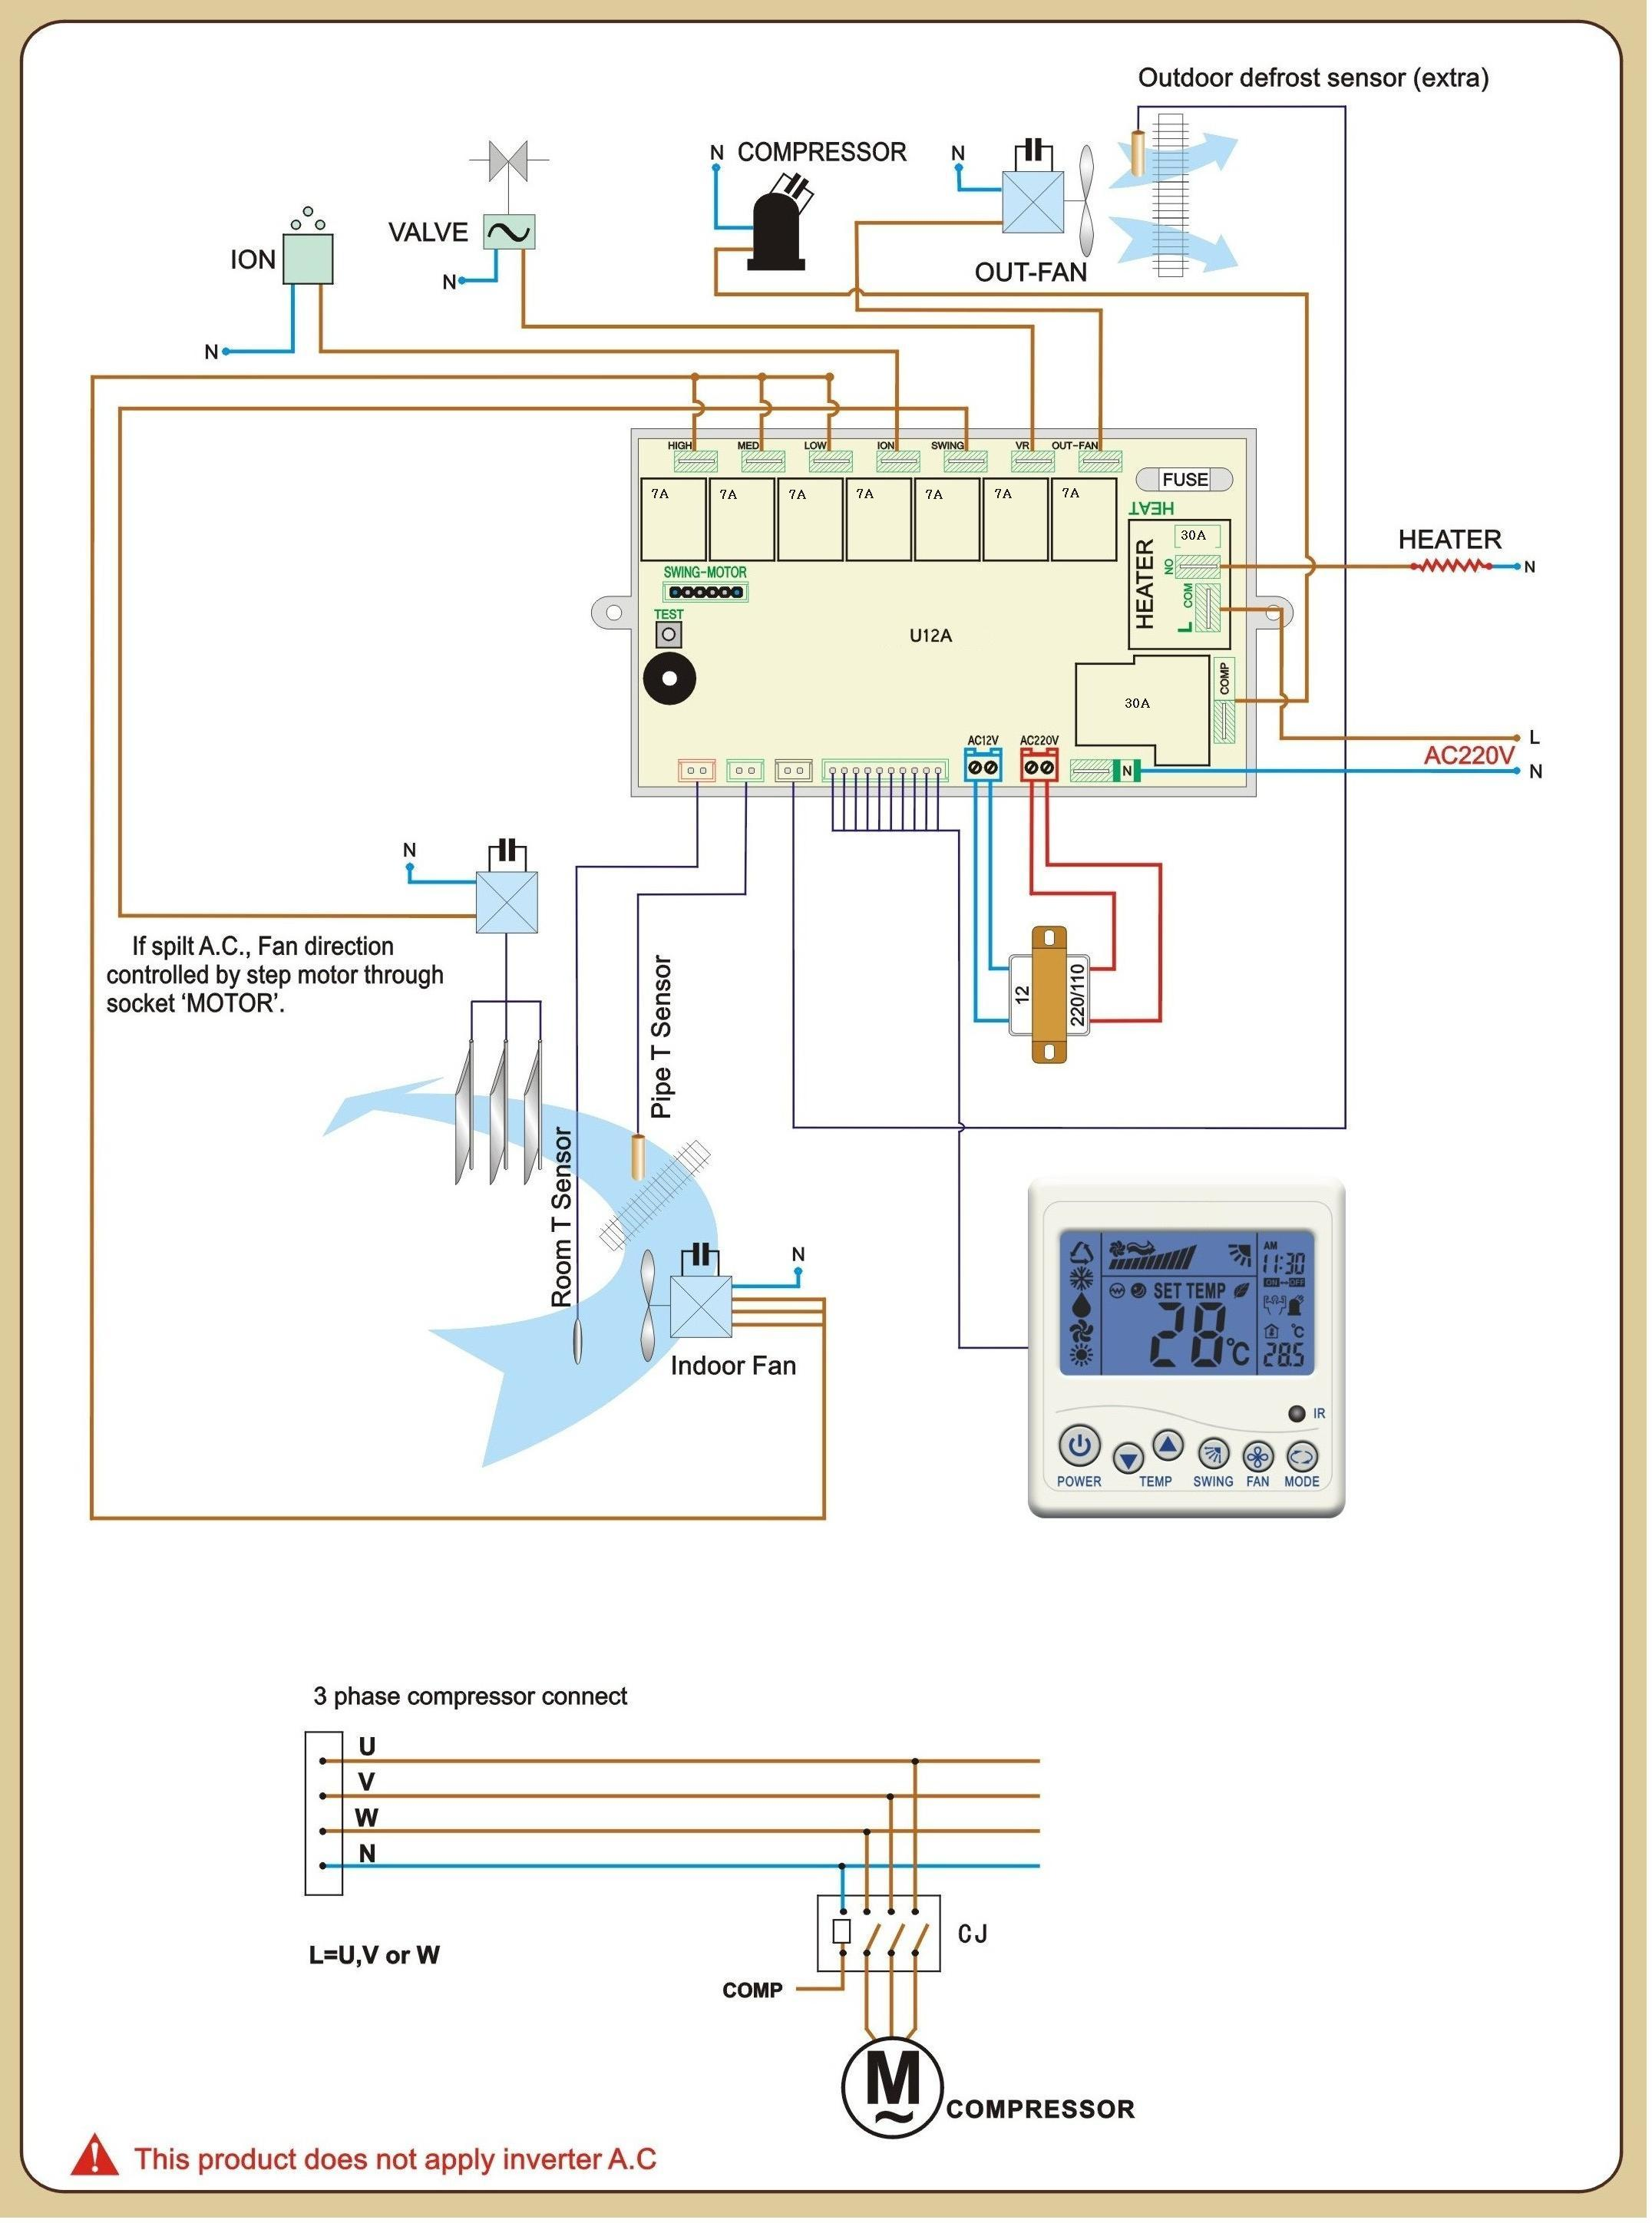 hvac thermostat wiring diagram motor capacitor manual how to change chinese home improvement